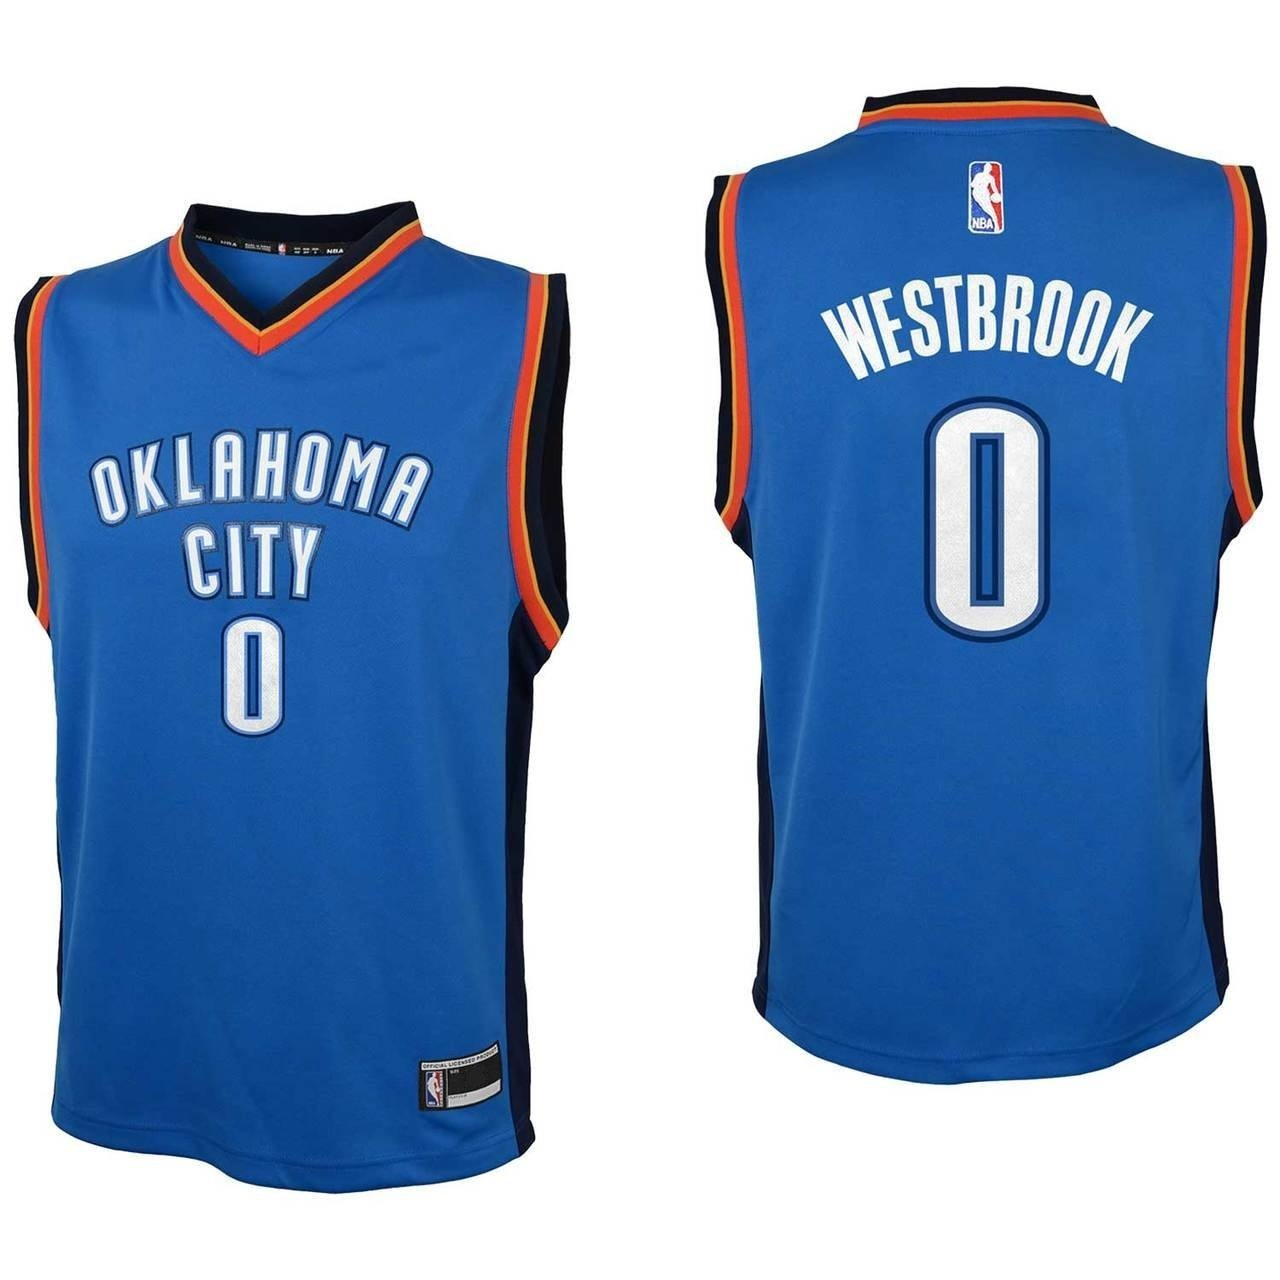 12d9689e Amazon.com : Outerstuff Youth Russell Westbrook Oklahoma City Thunder #0  Road Jersey Blue : Clothing